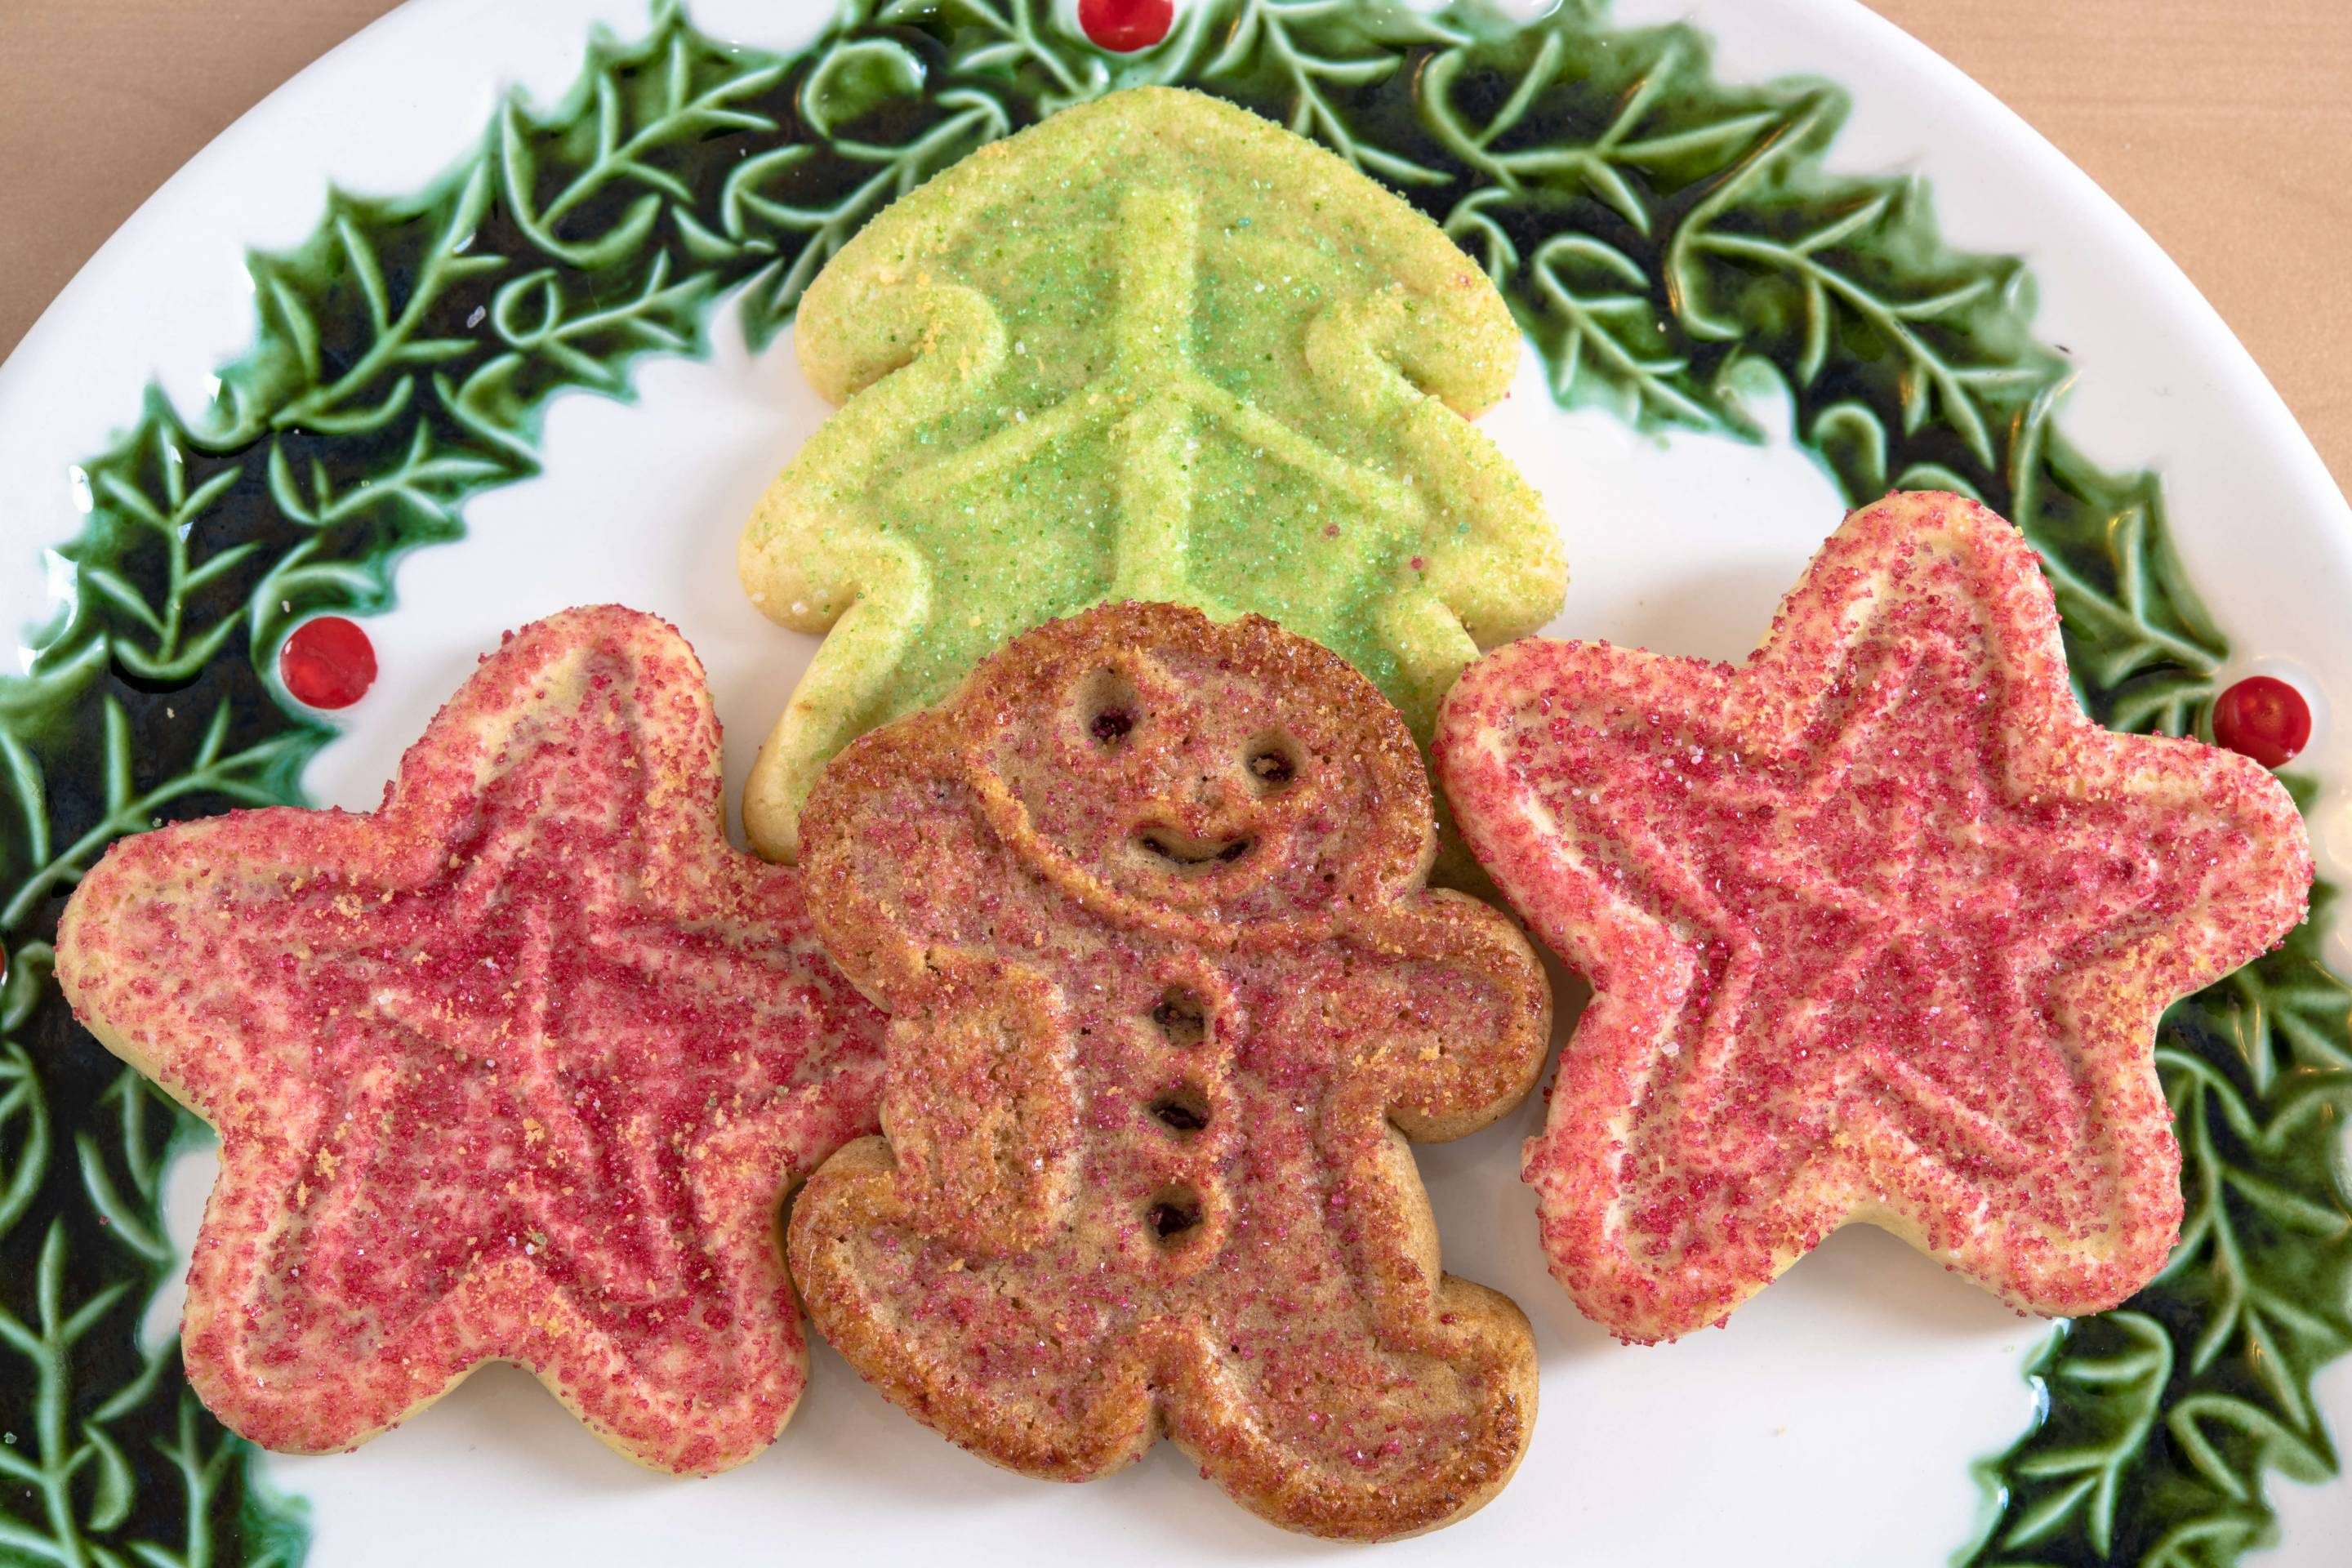 Gingerbread surrounded by other colorful cookies. High angle